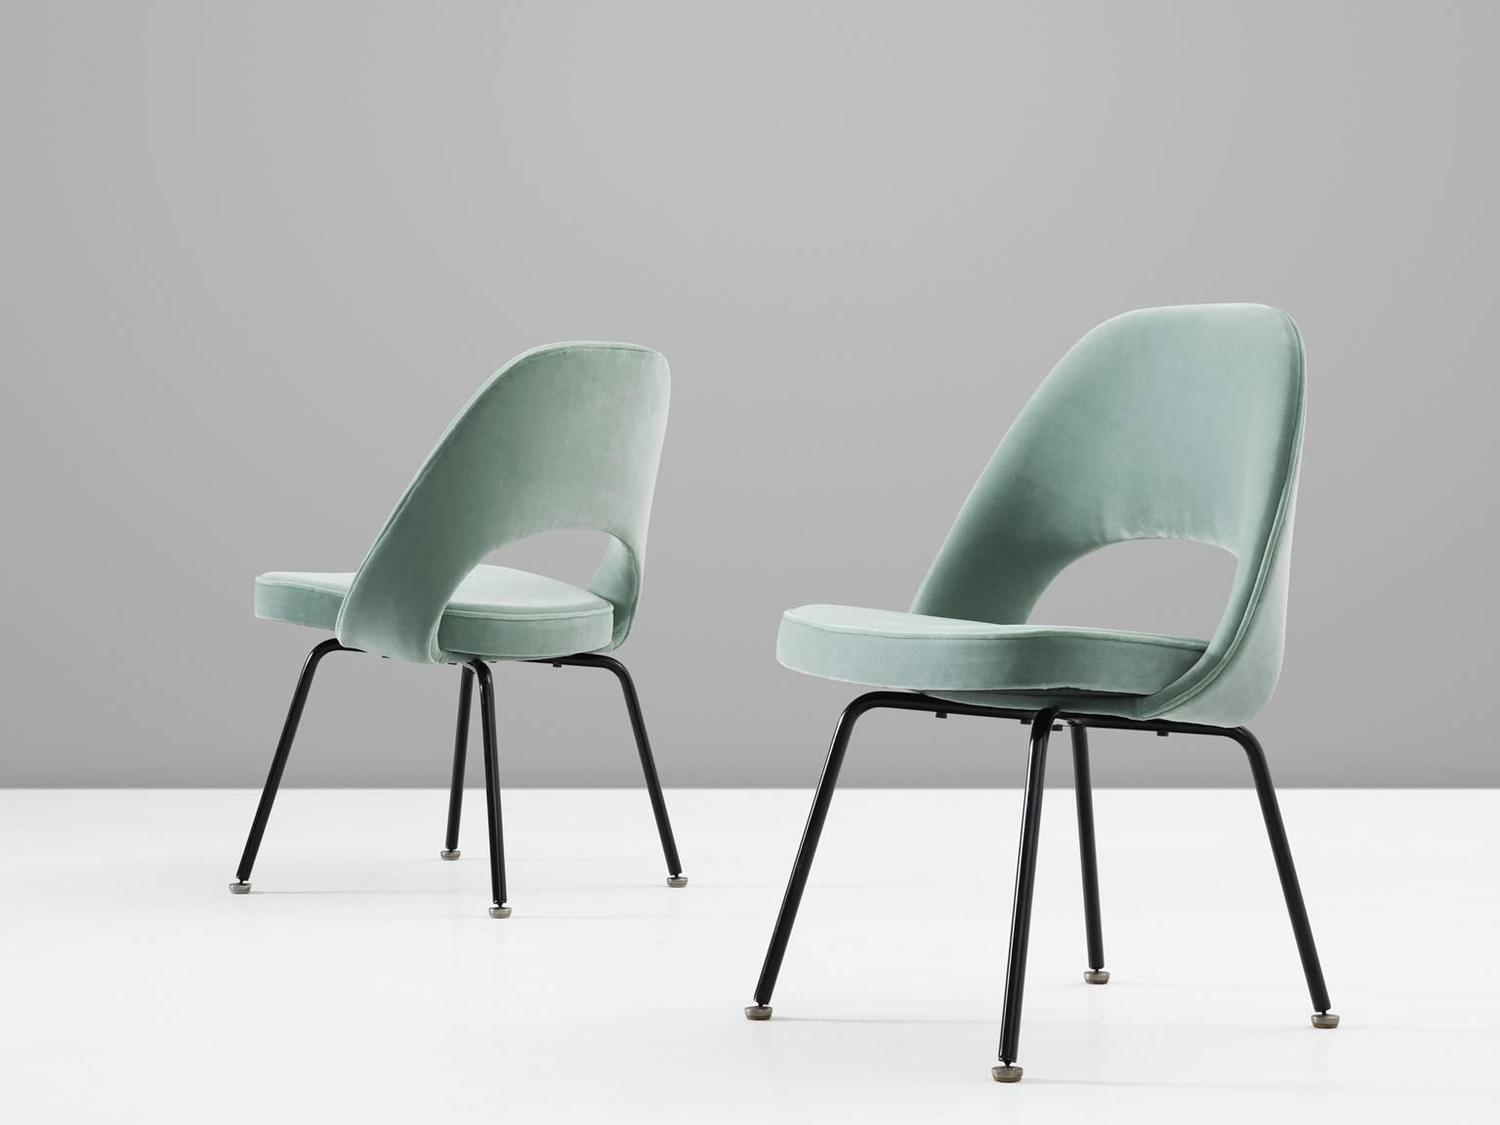 Eero saarinen set of eight reupholstered dining chairs for for Reupholstered chairs for sale